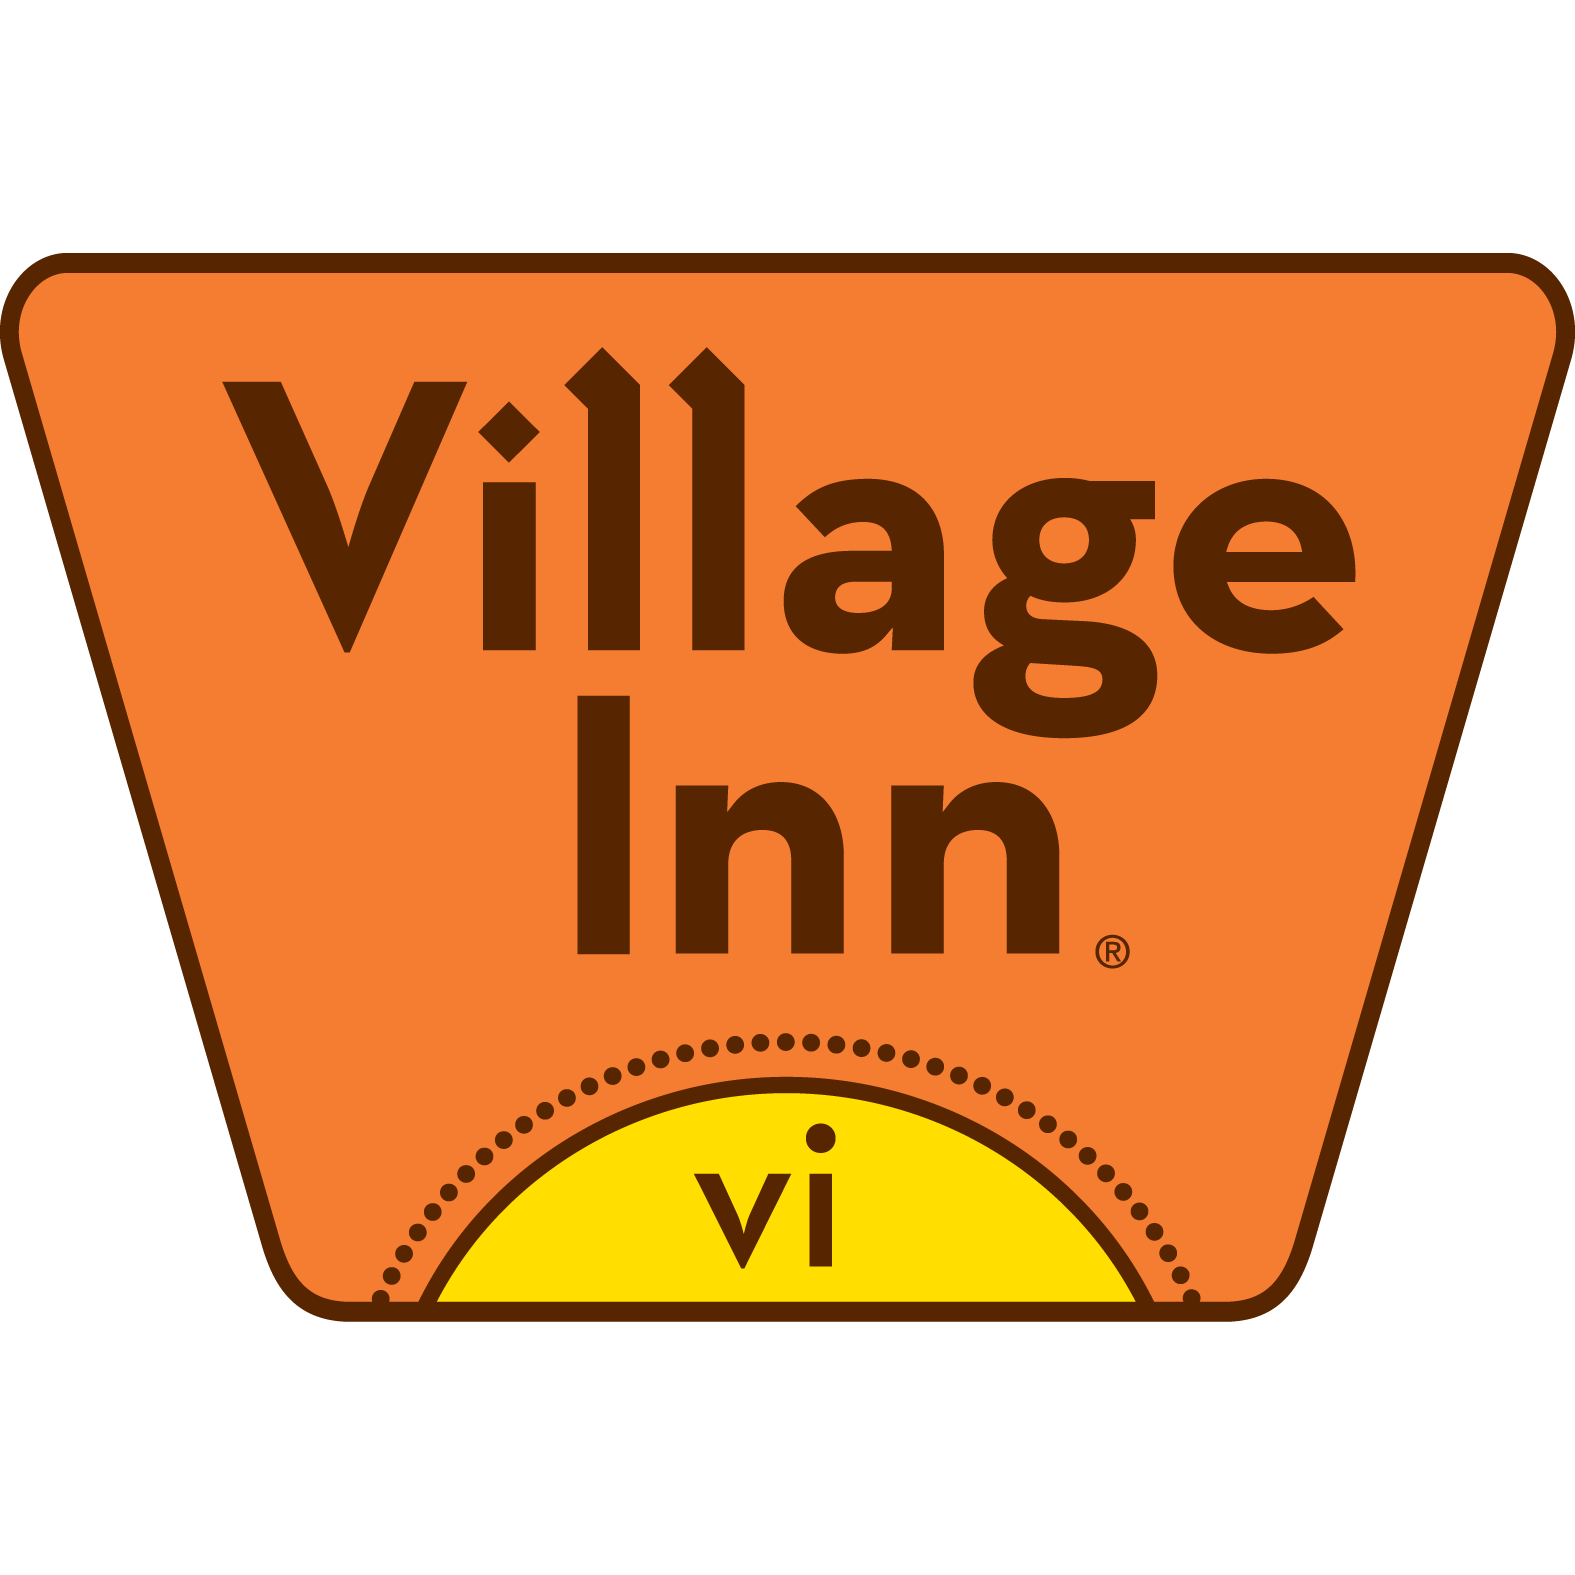 Village Inn - Mesa, AZ 85207 - (480)985-6501 | ShowMeLocal.com